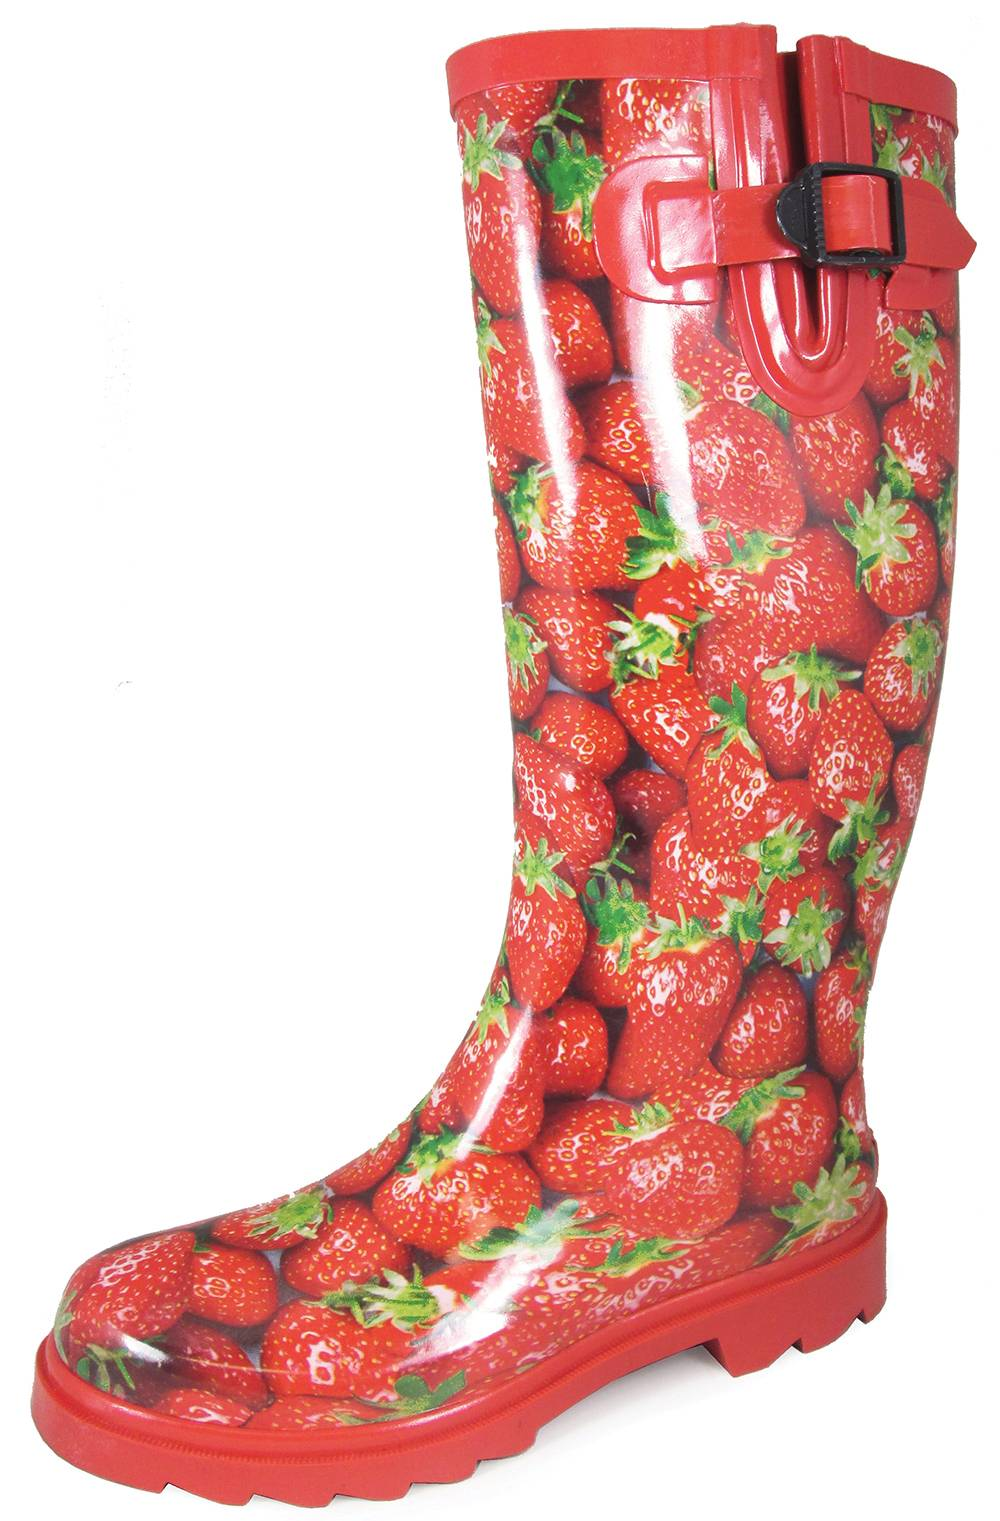 Smoky Mountain Ladies 15'' Rubber Boots - Strawberry Print